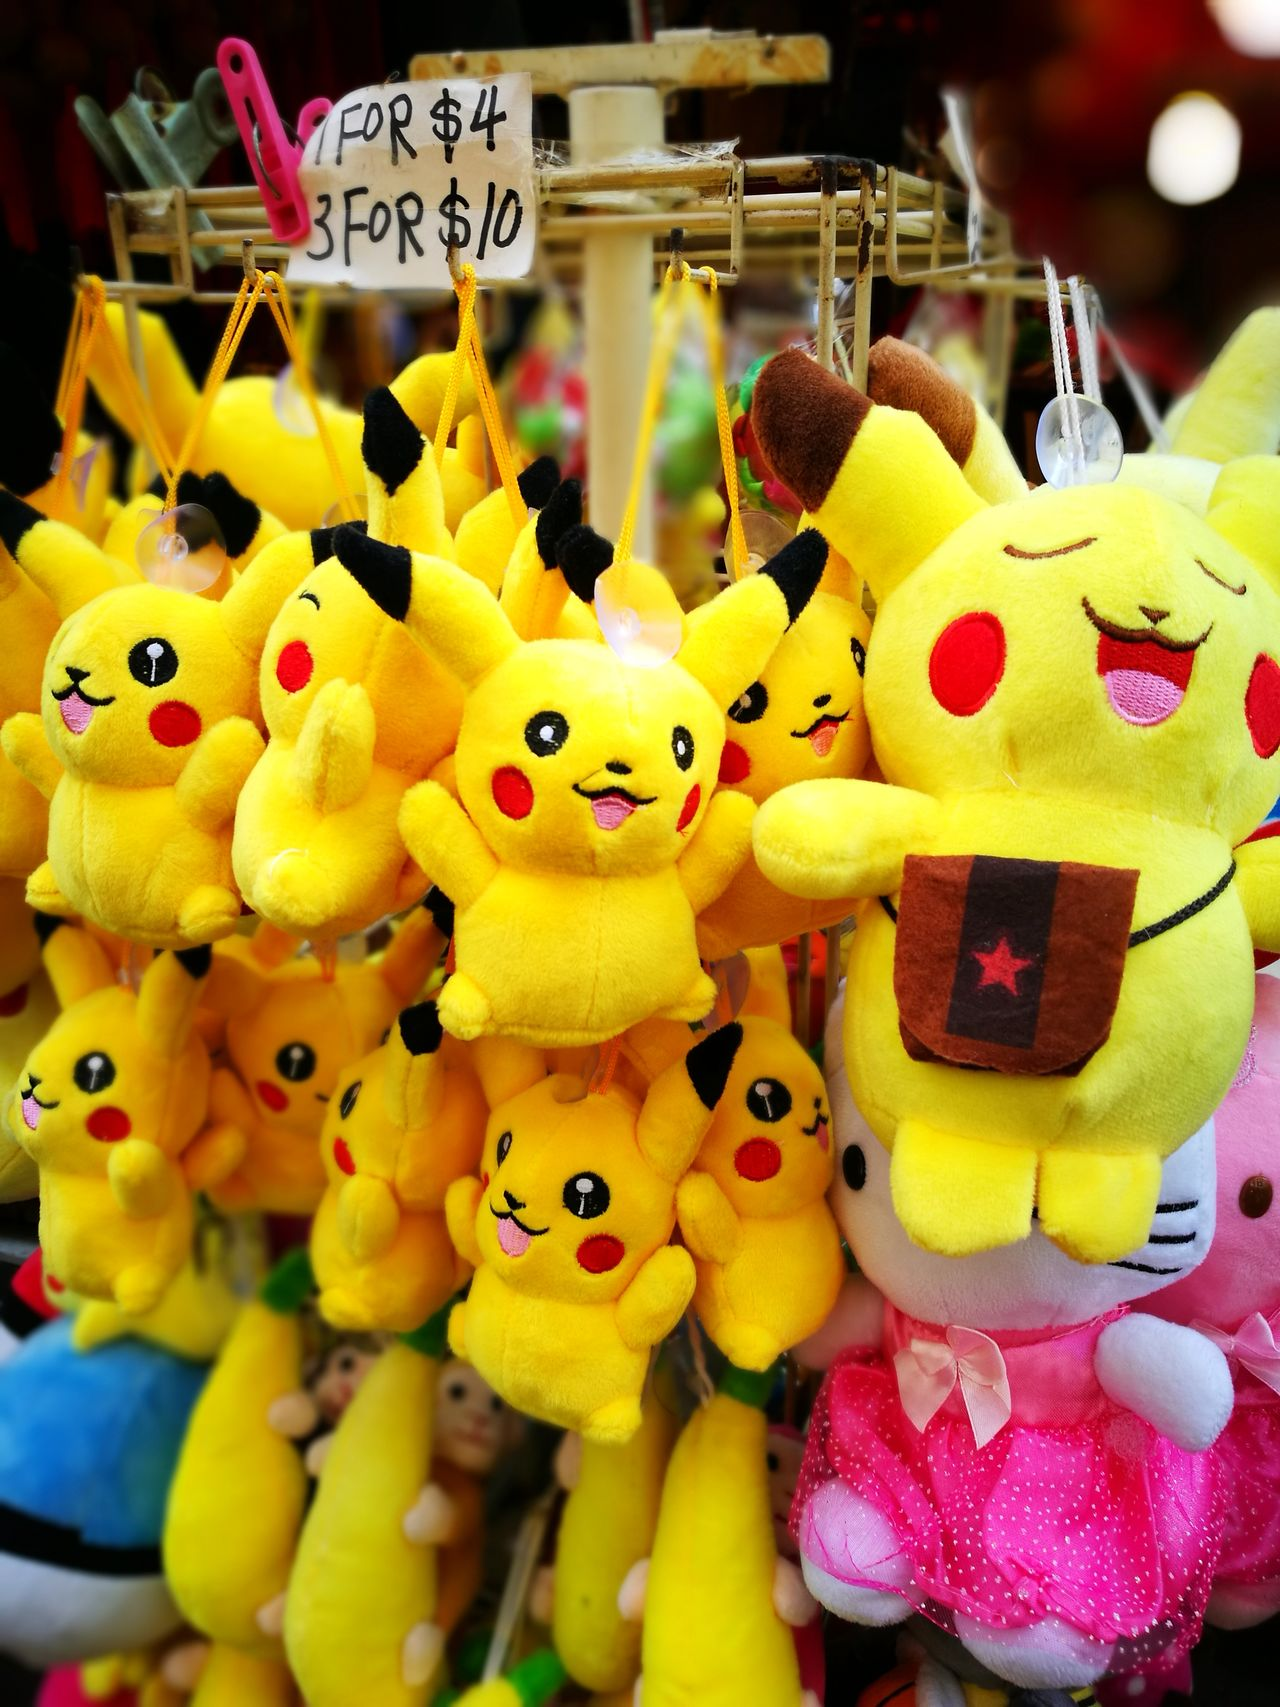 Animal Representation Toy For Sale Choice Yellow Retail  No People Artificial Hanging Variation Stuffed Toy Market Indoors  Close-up Day Pikachu Happy Street Photography The Week Of Eyeem